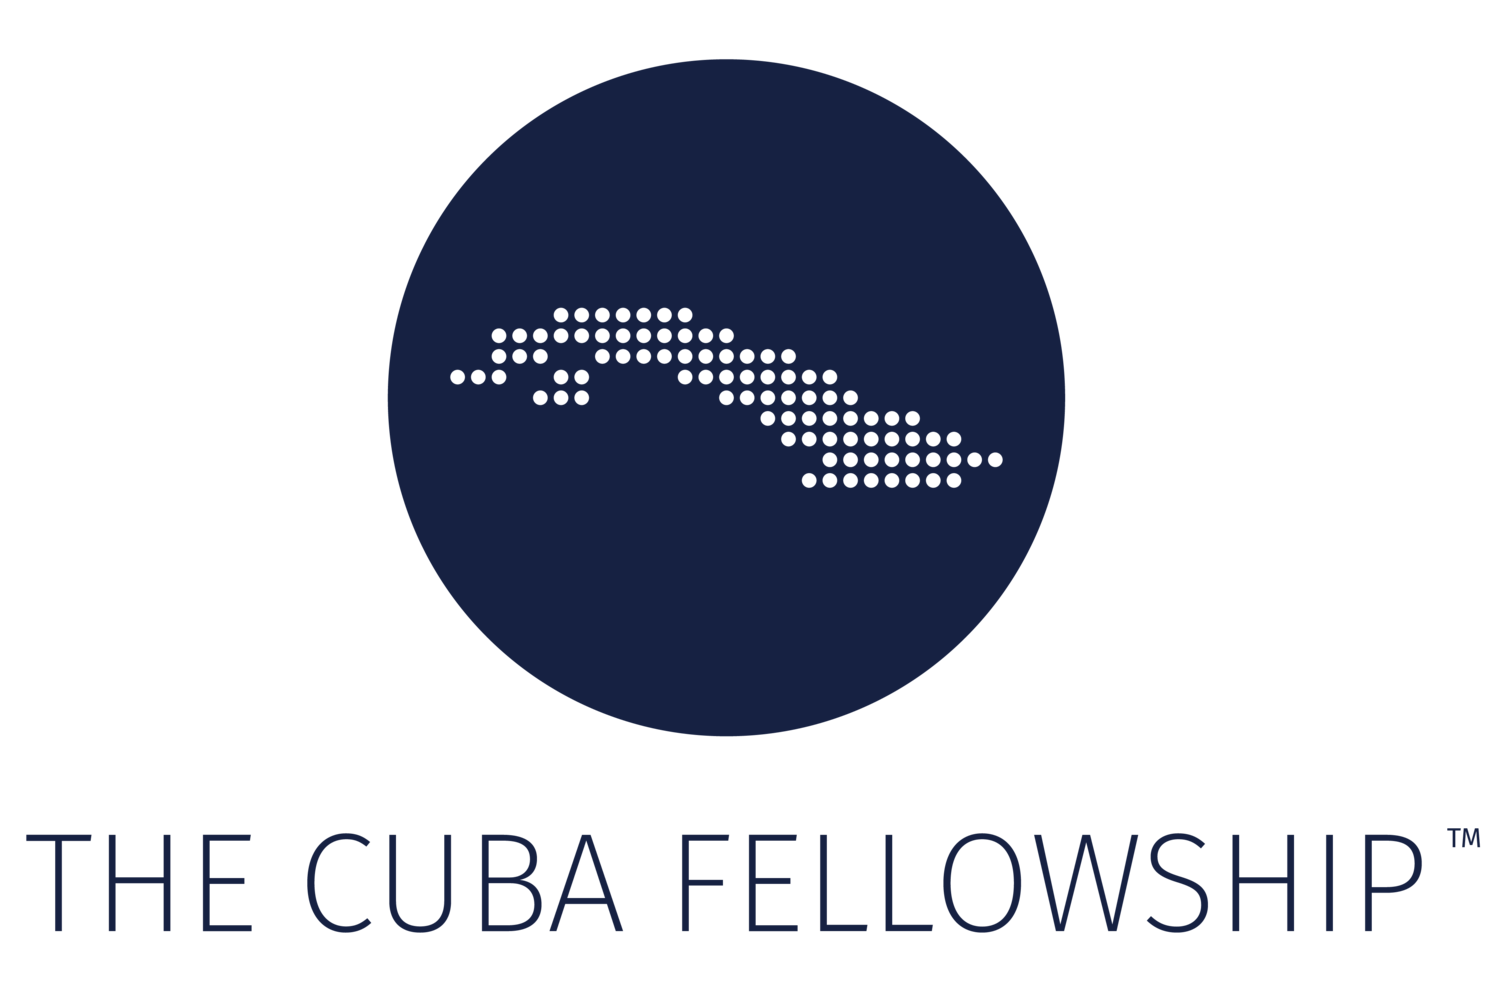 The Cuba Fellowship